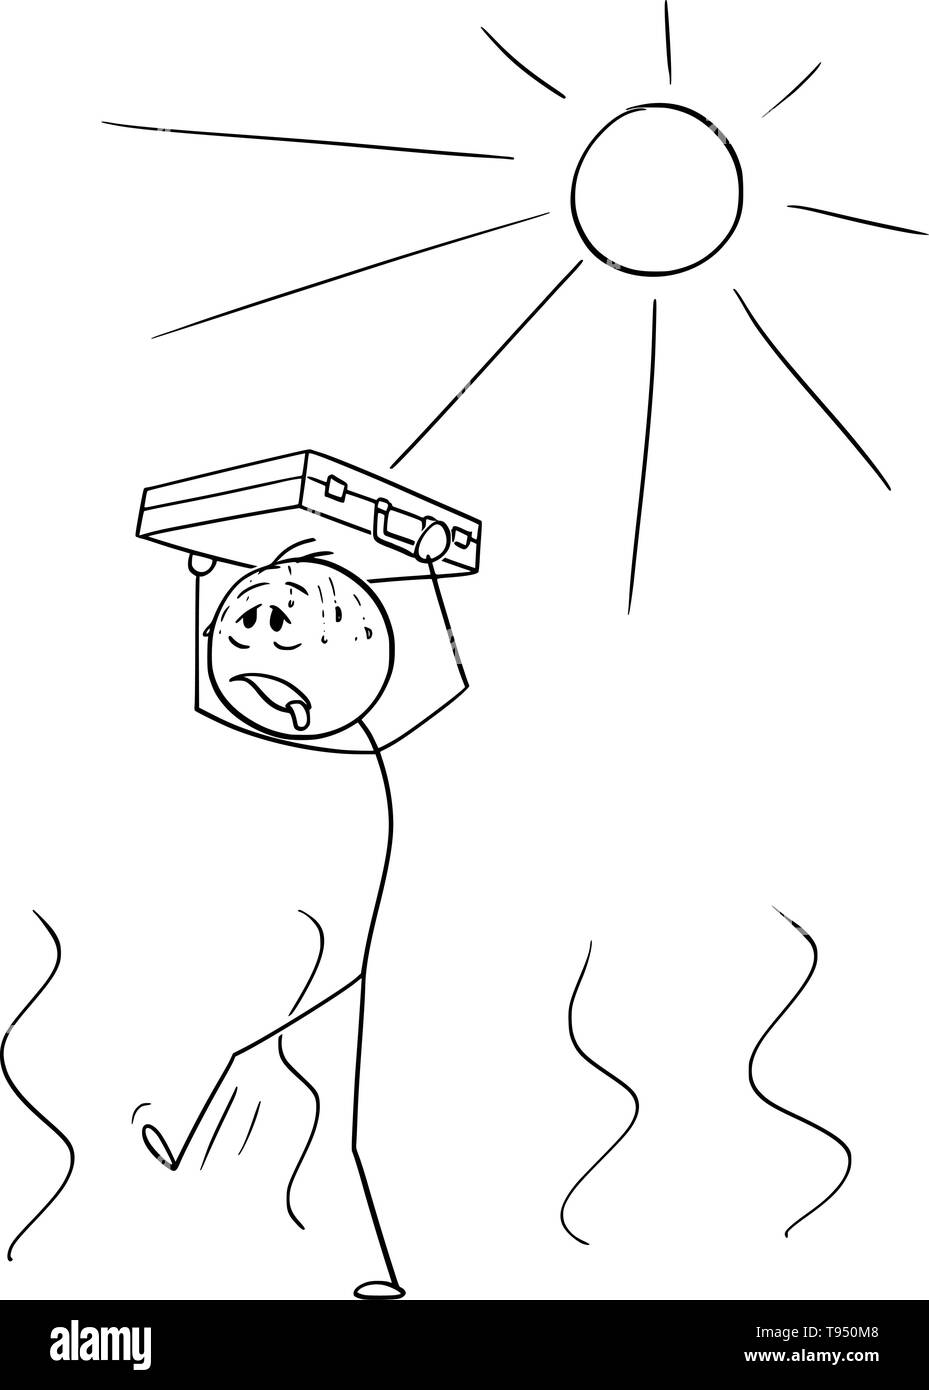 Vector cartoon stick figure drawing conceptual illustration of thirsty man or businessman walking in hot weather with briefcase above his head protecting him from the Sun. Metaphor of financial crisis. - Stock Vector